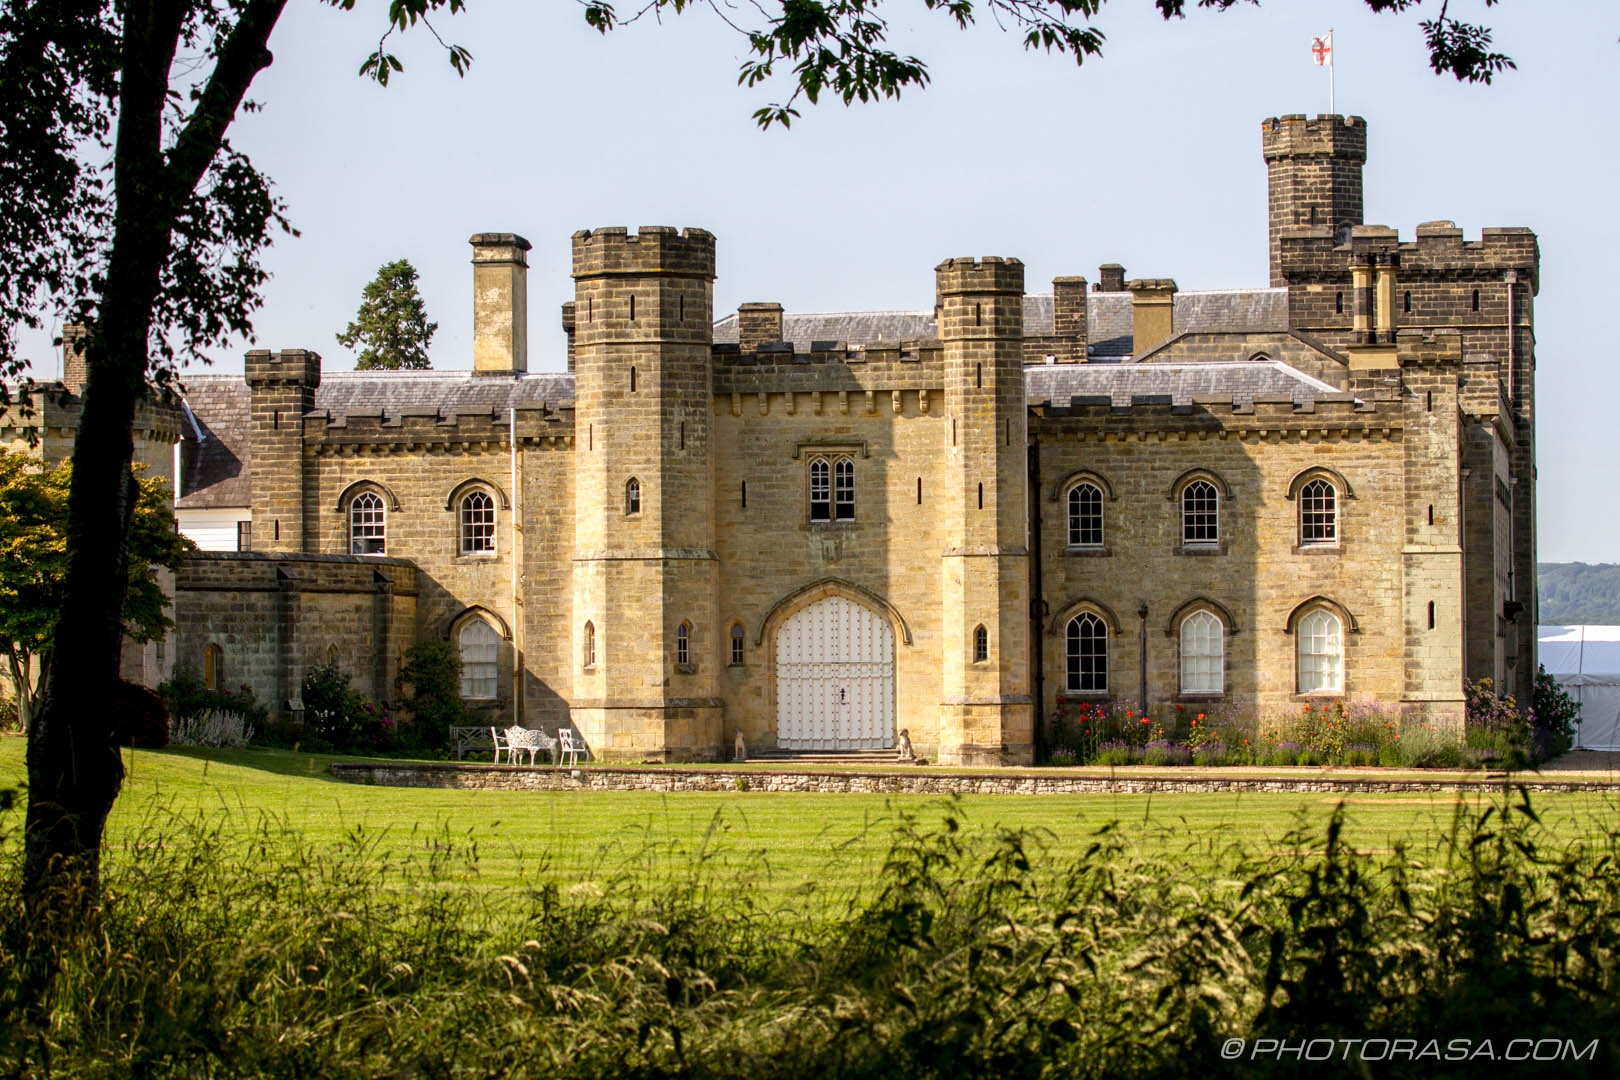 http://photorasa.com/chiddingstone-castle/chiddingstone-castle-2/